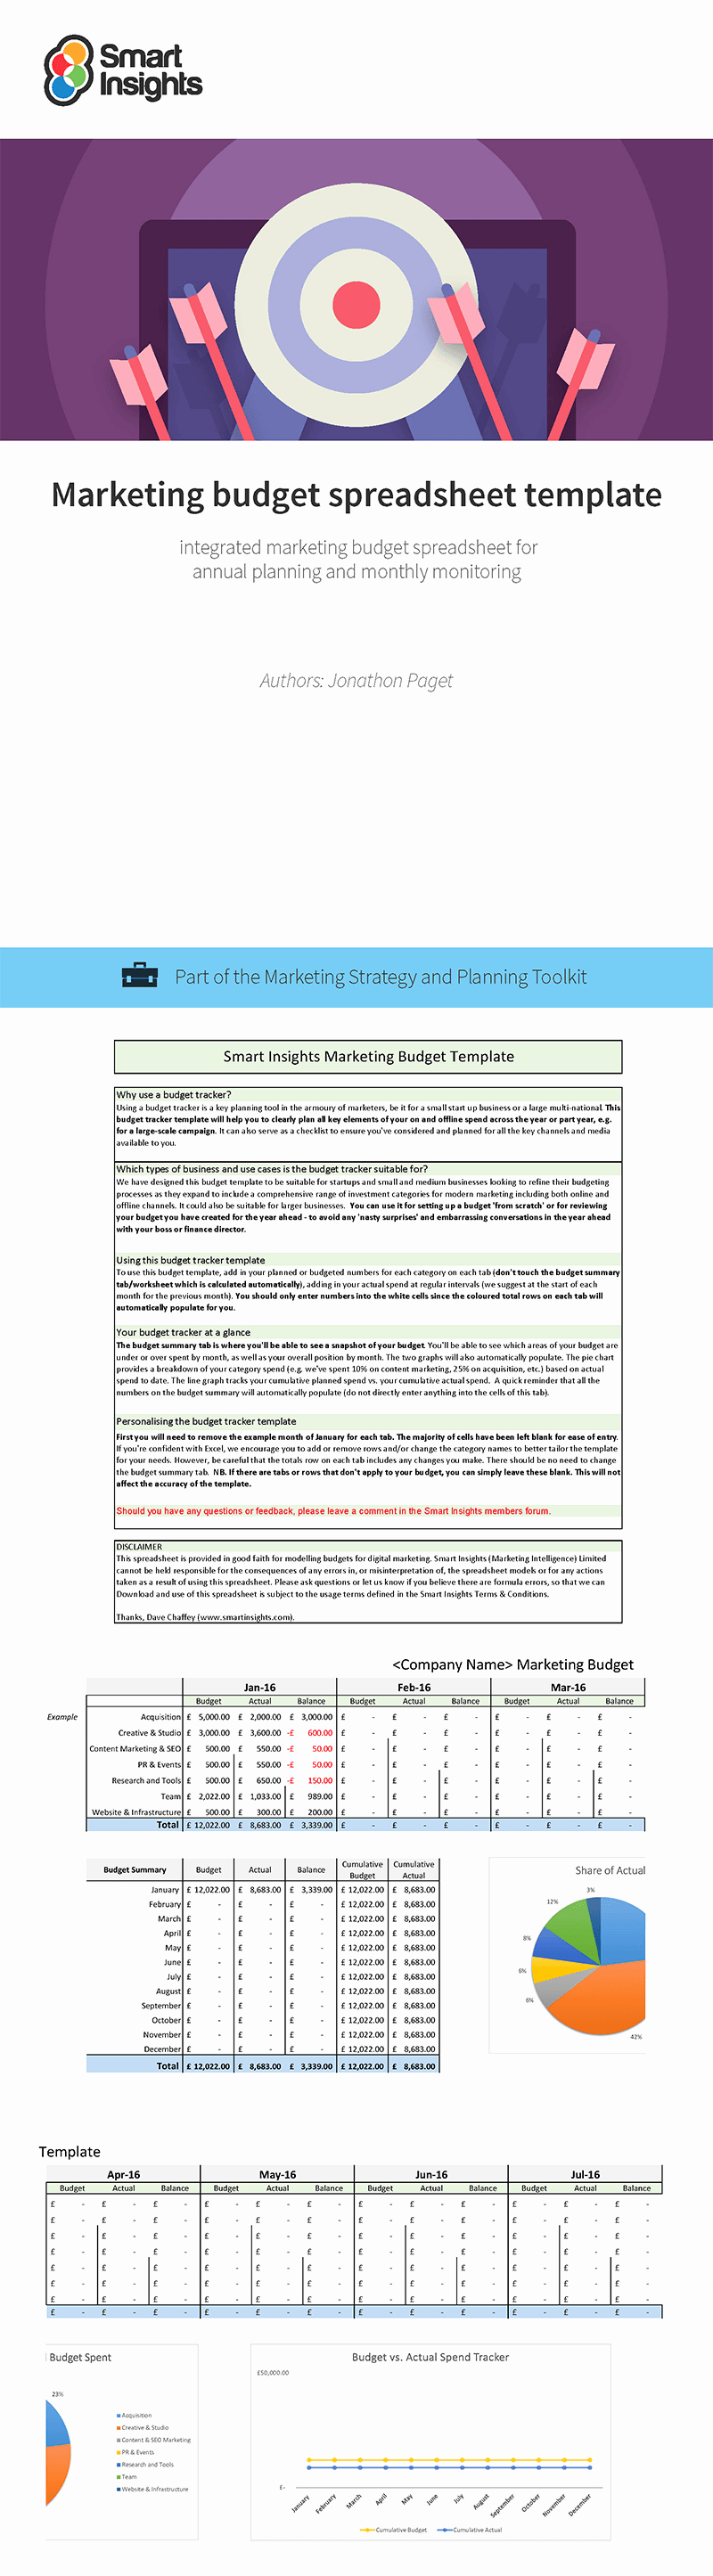 Digital Marketing Budget Template Luxury Marketing Bud Spreadsheet Template Smart Insights